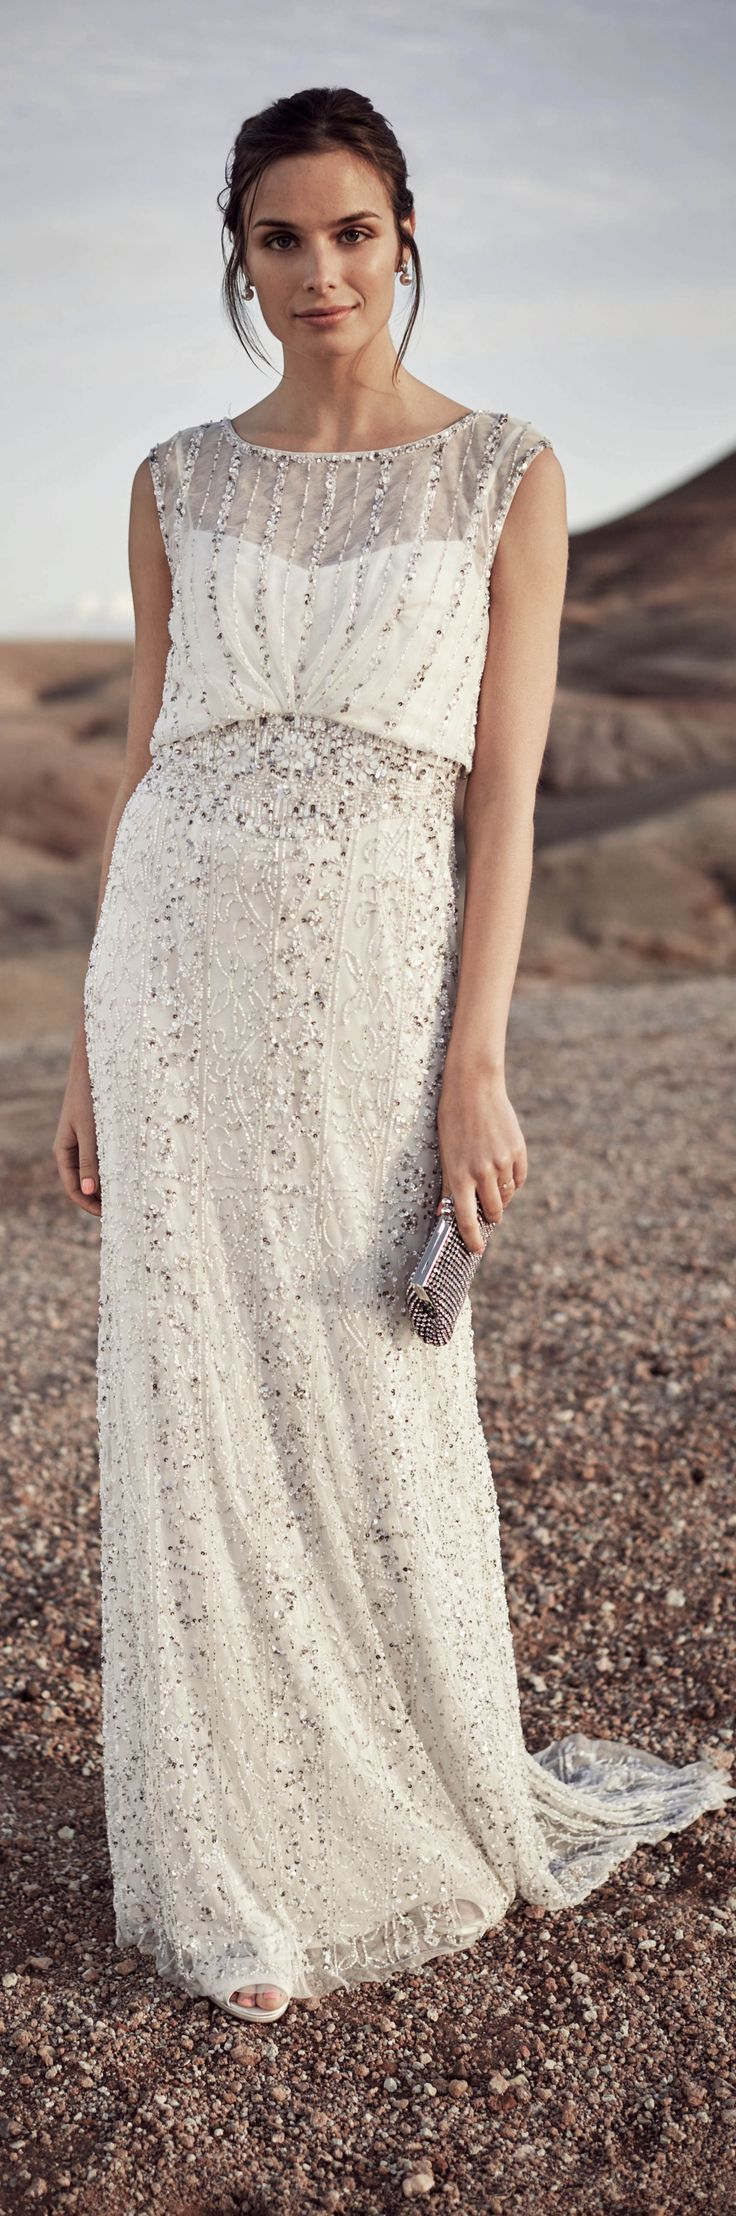 There is nothing about this wedding dress that I don't love - read article updated for 2015 - http://www.boomerinas.com/2011/12/27/wedding-dresses-for-older-brides-boomers-over-40/